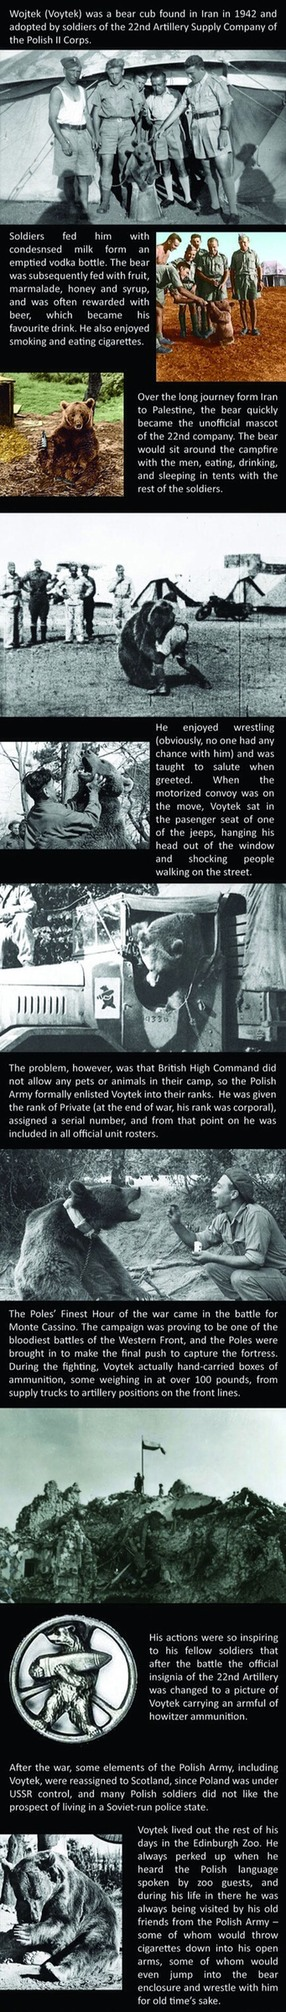 tl;dr: A bear became a Polish soldier in WWII - meme